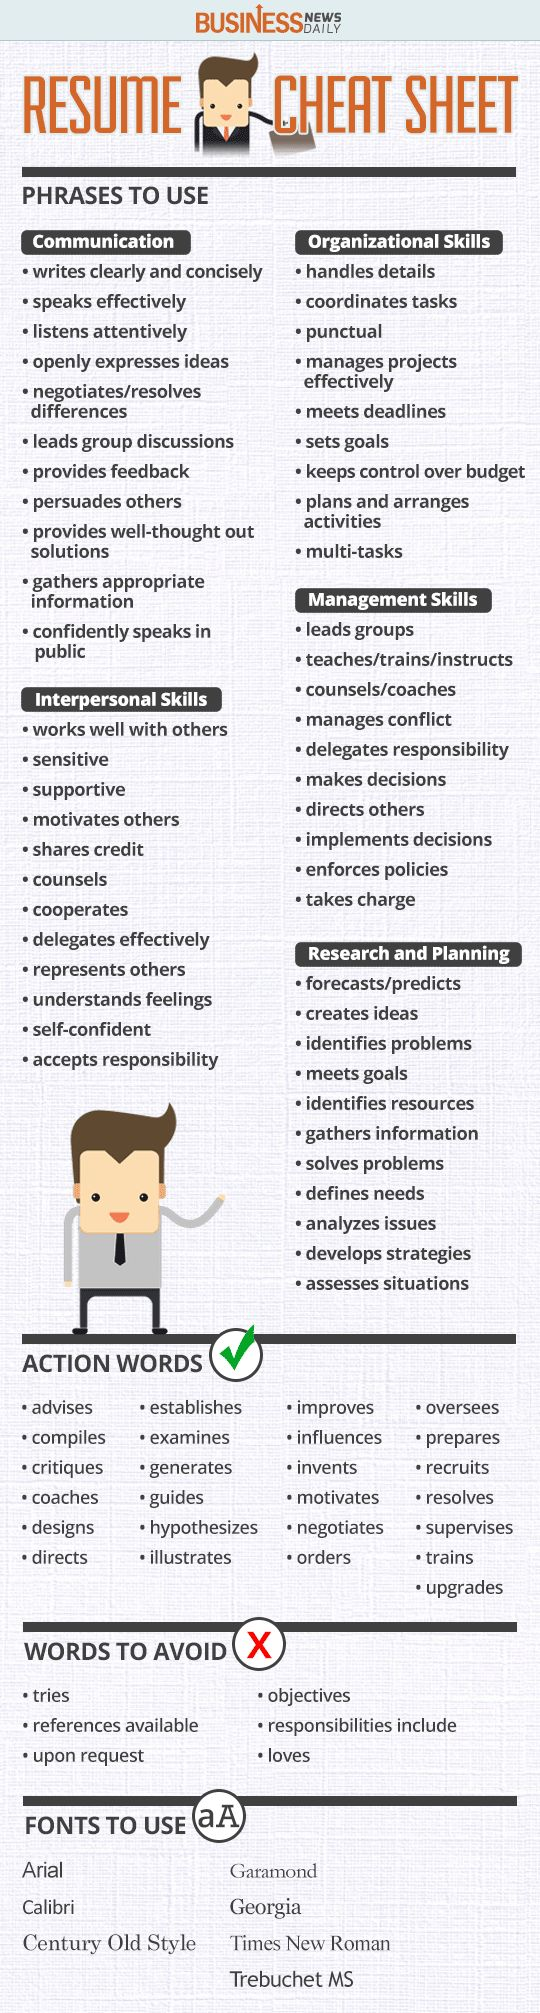 Opposenewapstandardsus  Splendid  Ideas About Resume On Pinterest  Cv Format Resume Cv And  With Heavenly Resume Cheat Sheet Infographic Andrews Almost Done With A Complete Unit On Employment Which With Awesome Career Focus On Resume Also Resumes For Highschool Students In Addition Bartending Resume Skills And Nanny Responsibilities Resume As Well As How To Write A Resume Step By Step Additionally Education Section Of Resume Example From Pinterestcom With Opposenewapstandardsus  Heavenly  Ideas About Resume On Pinterest  Cv Format Resume Cv And  With Awesome Resume Cheat Sheet Infographic Andrews Almost Done With A Complete Unit On Employment Which And Splendid Career Focus On Resume Also Resumes For Highschool Students In Addition Bartending Resume Skills From Pinterestcom